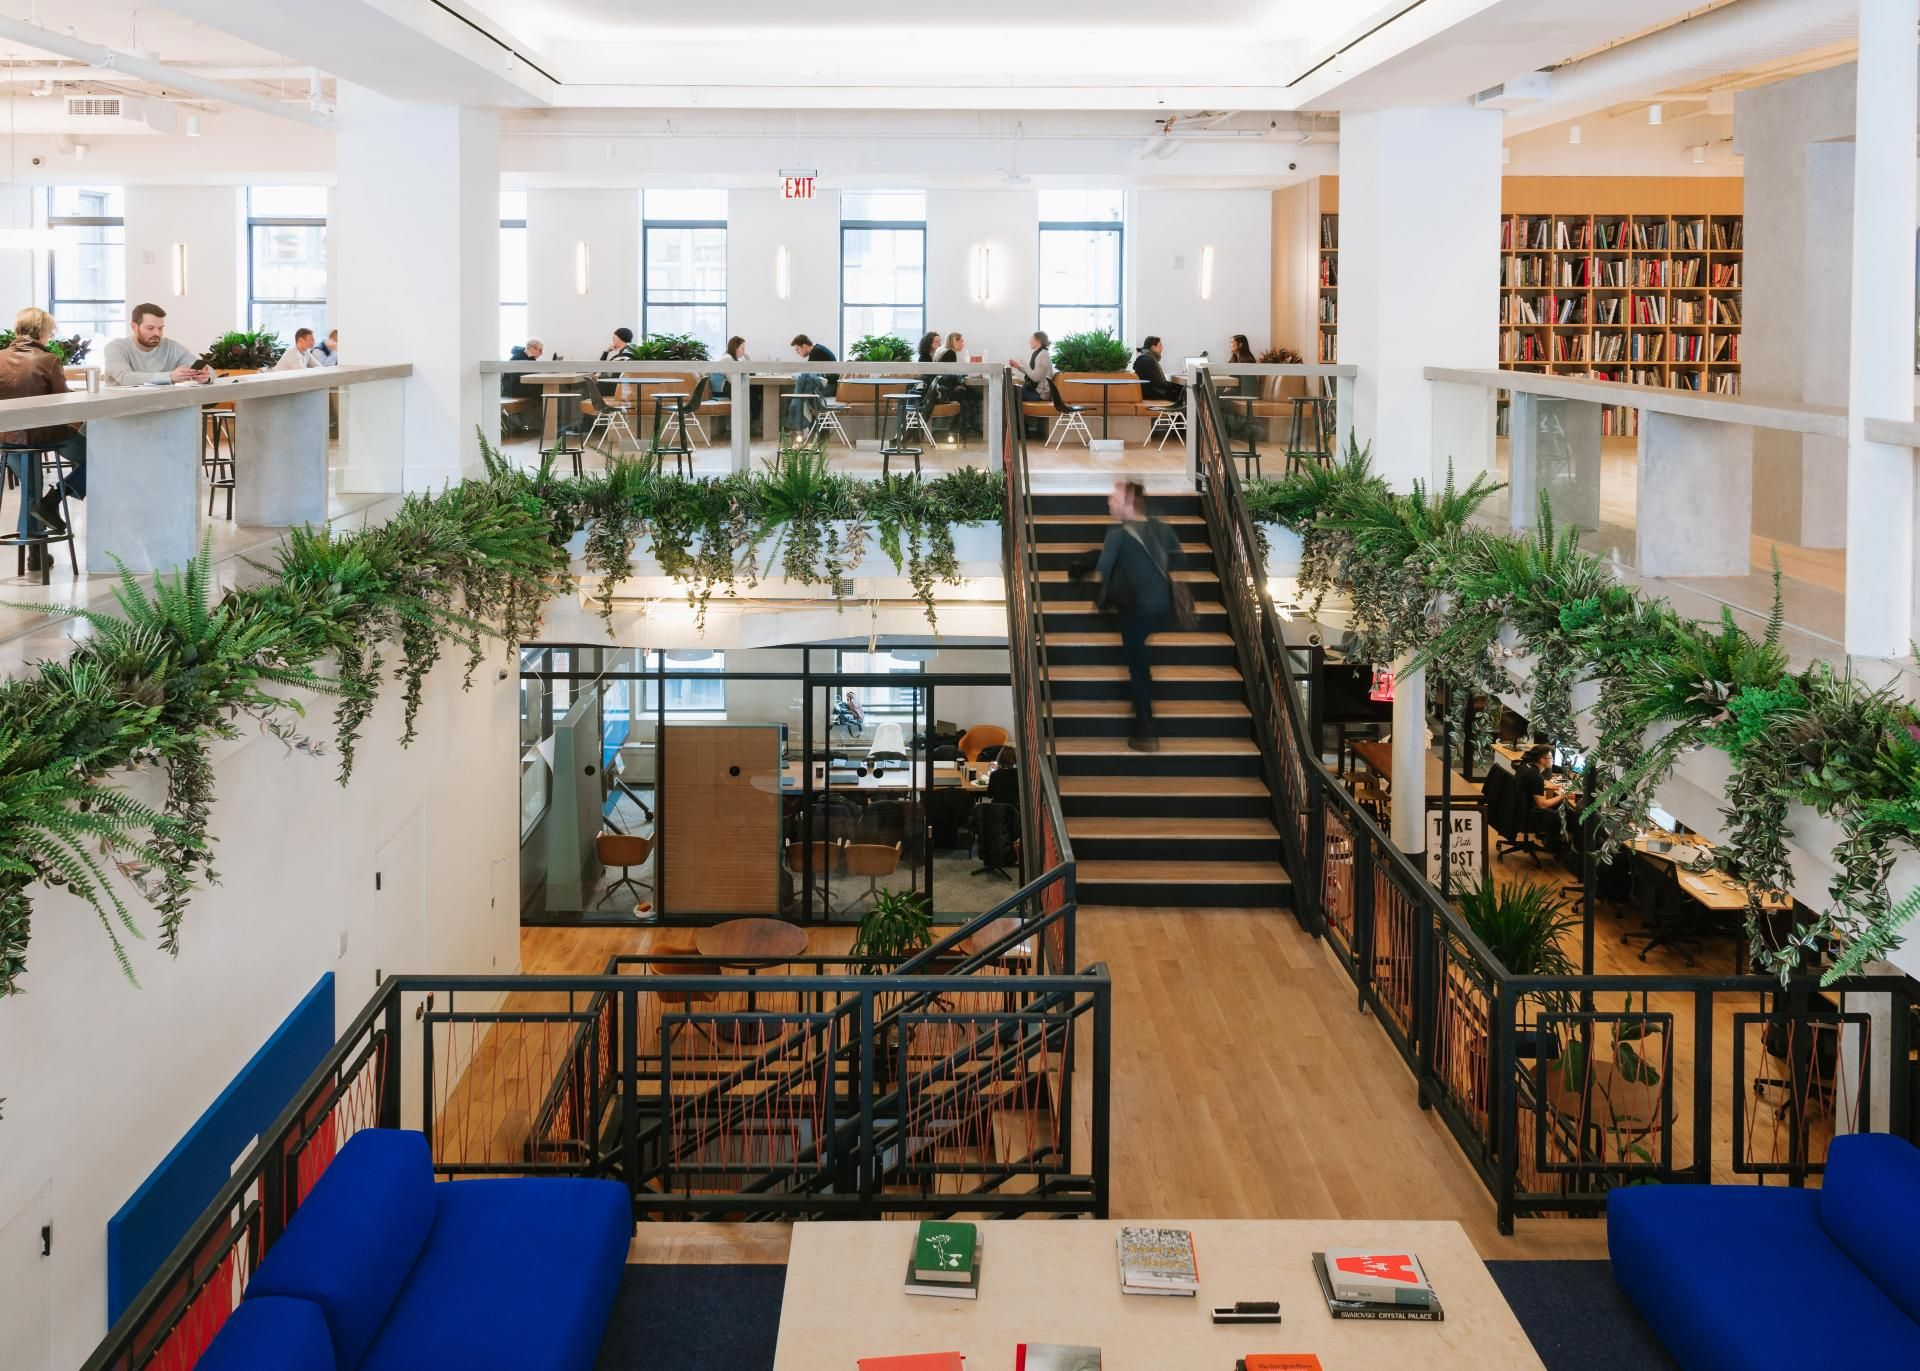 WeWork, Once Valued At $47B, Is Now Worth Less Than $3B, SoftBank Says